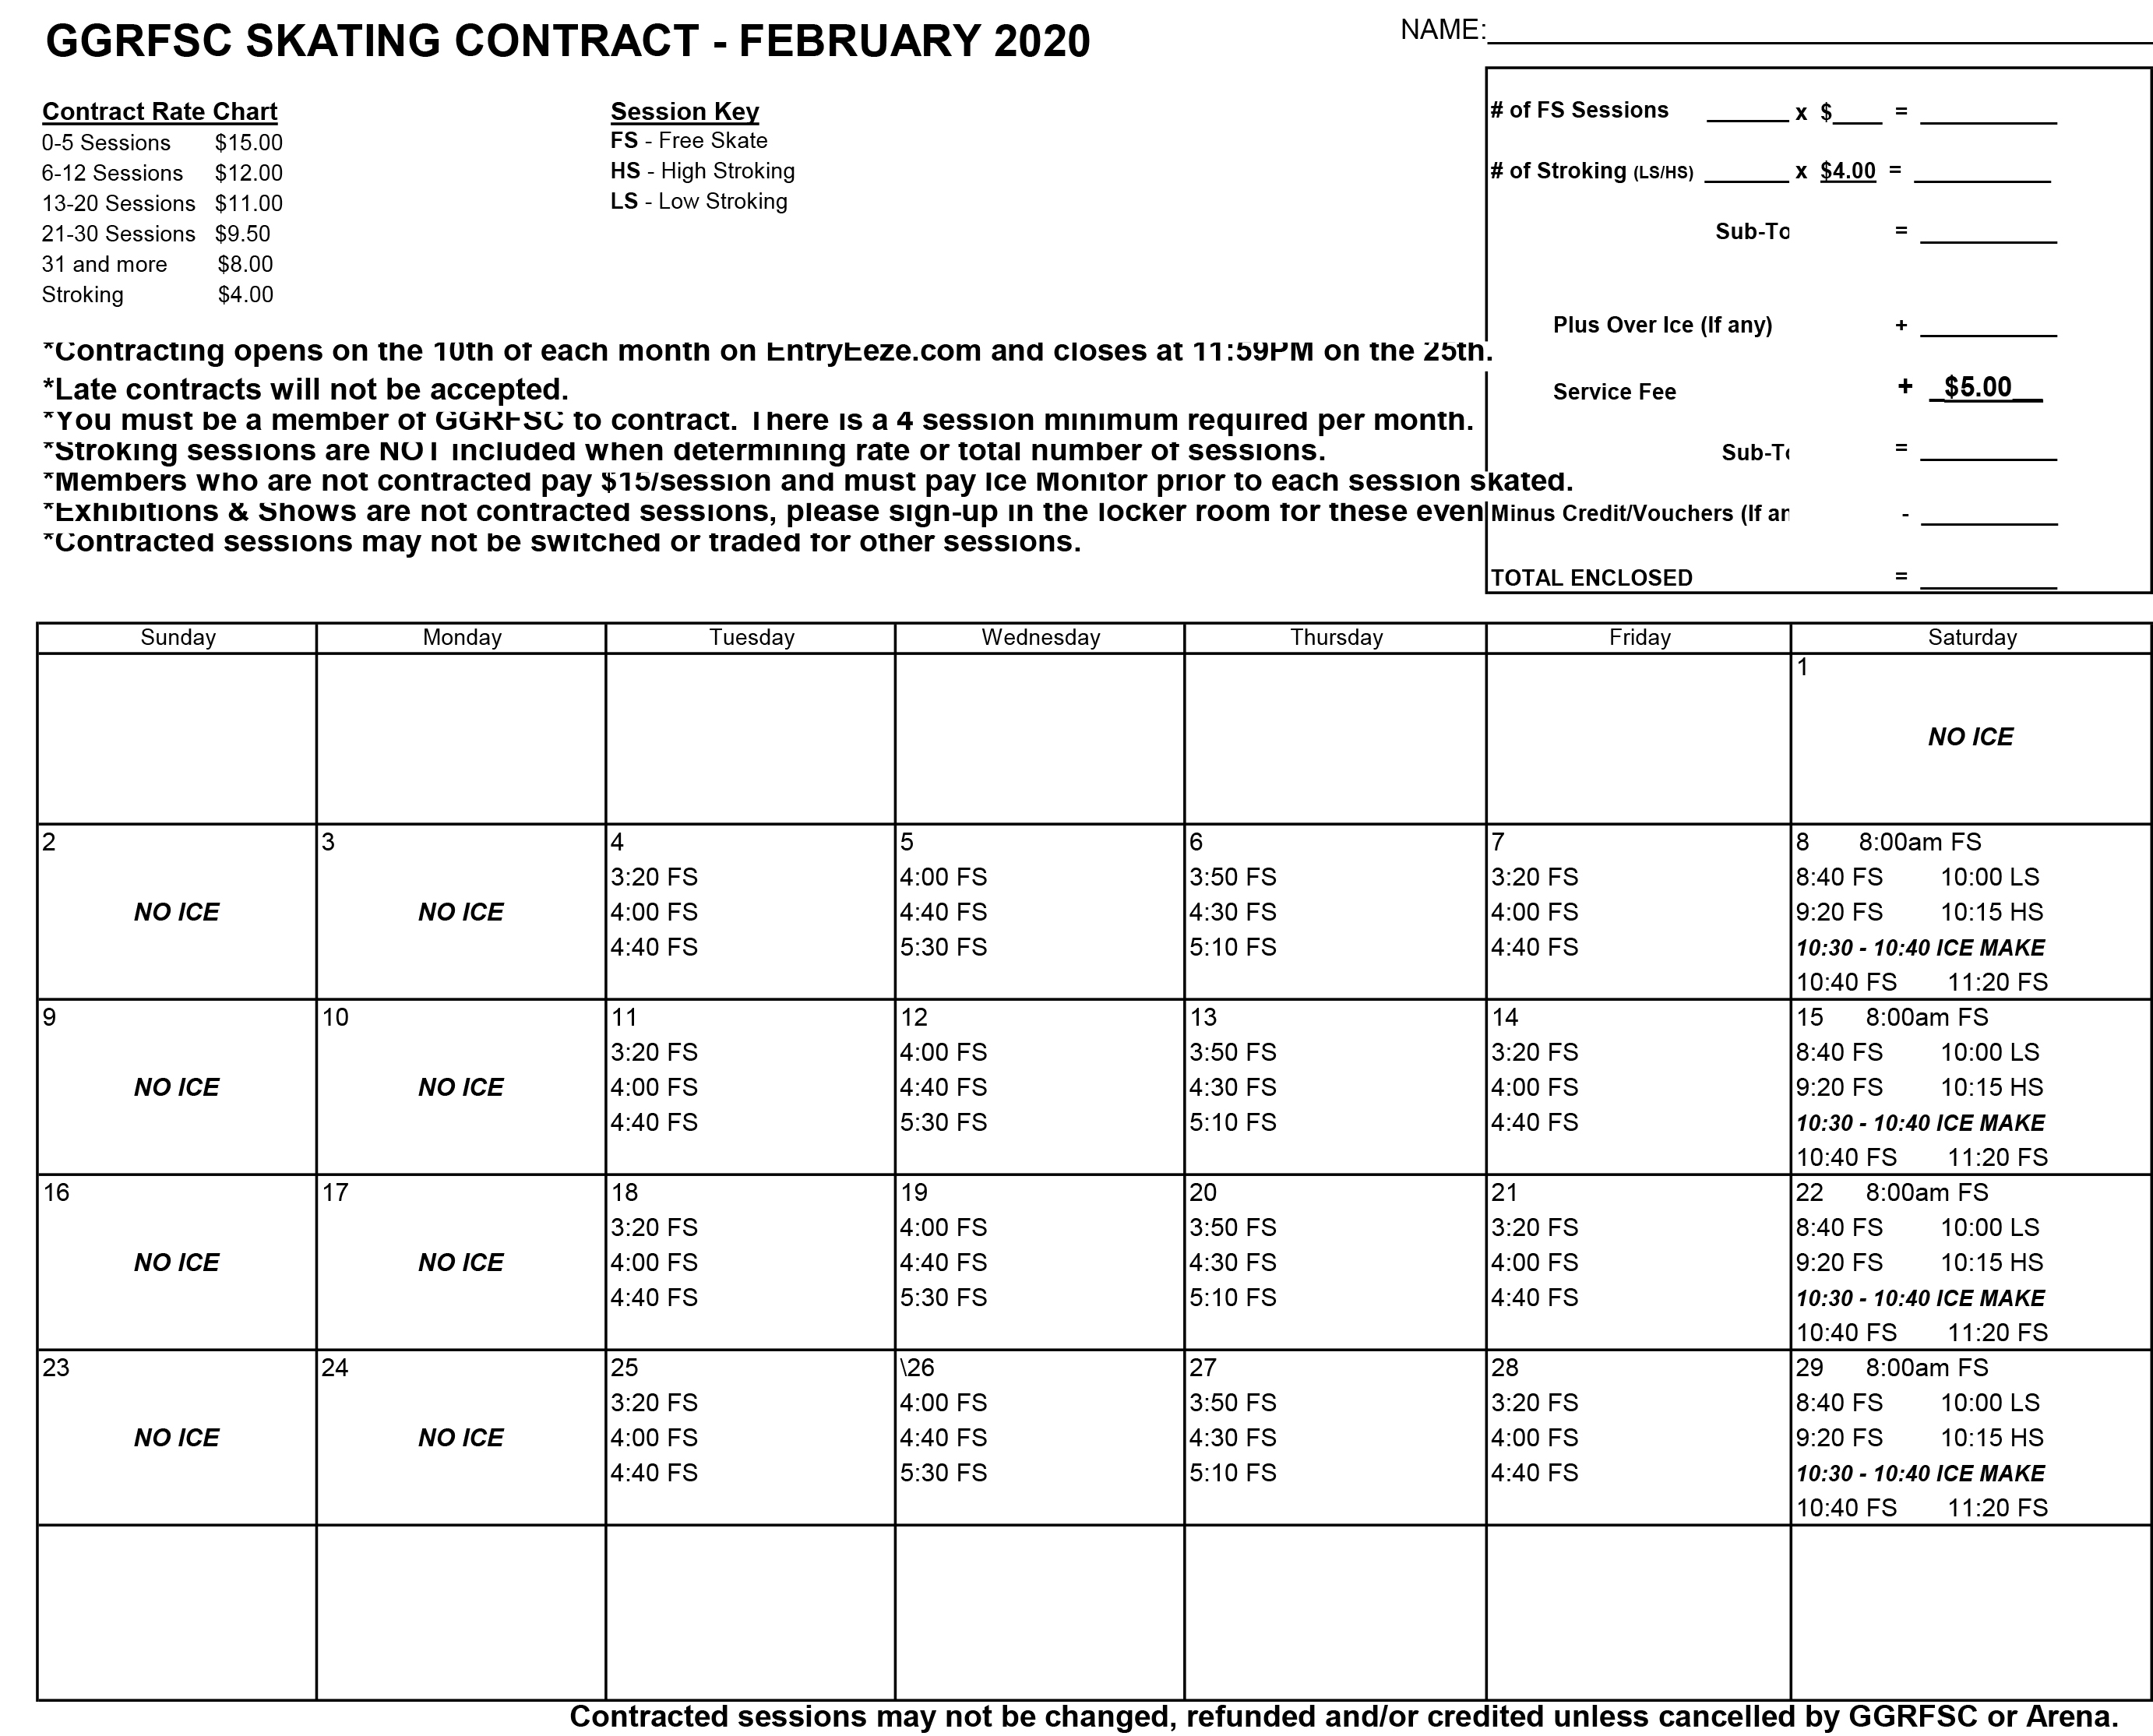 GGRFSC 2020 02 February CONTRACT